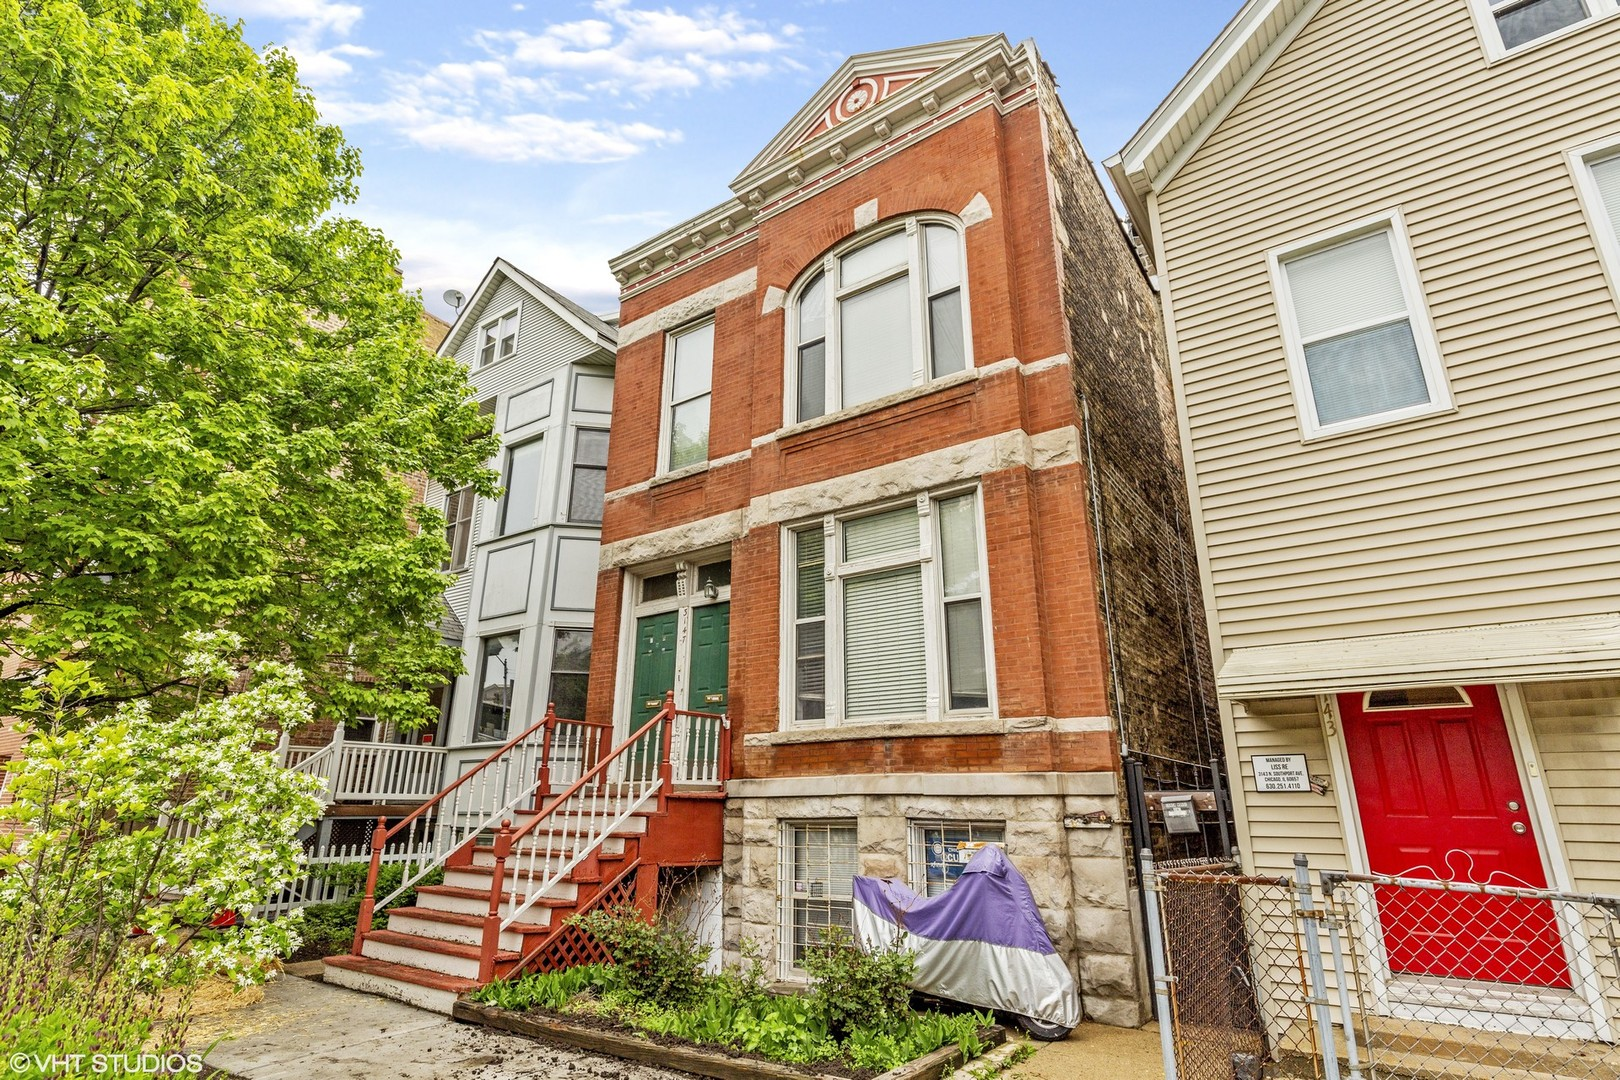 3147 Southport ,Chicago, Illinois 60657